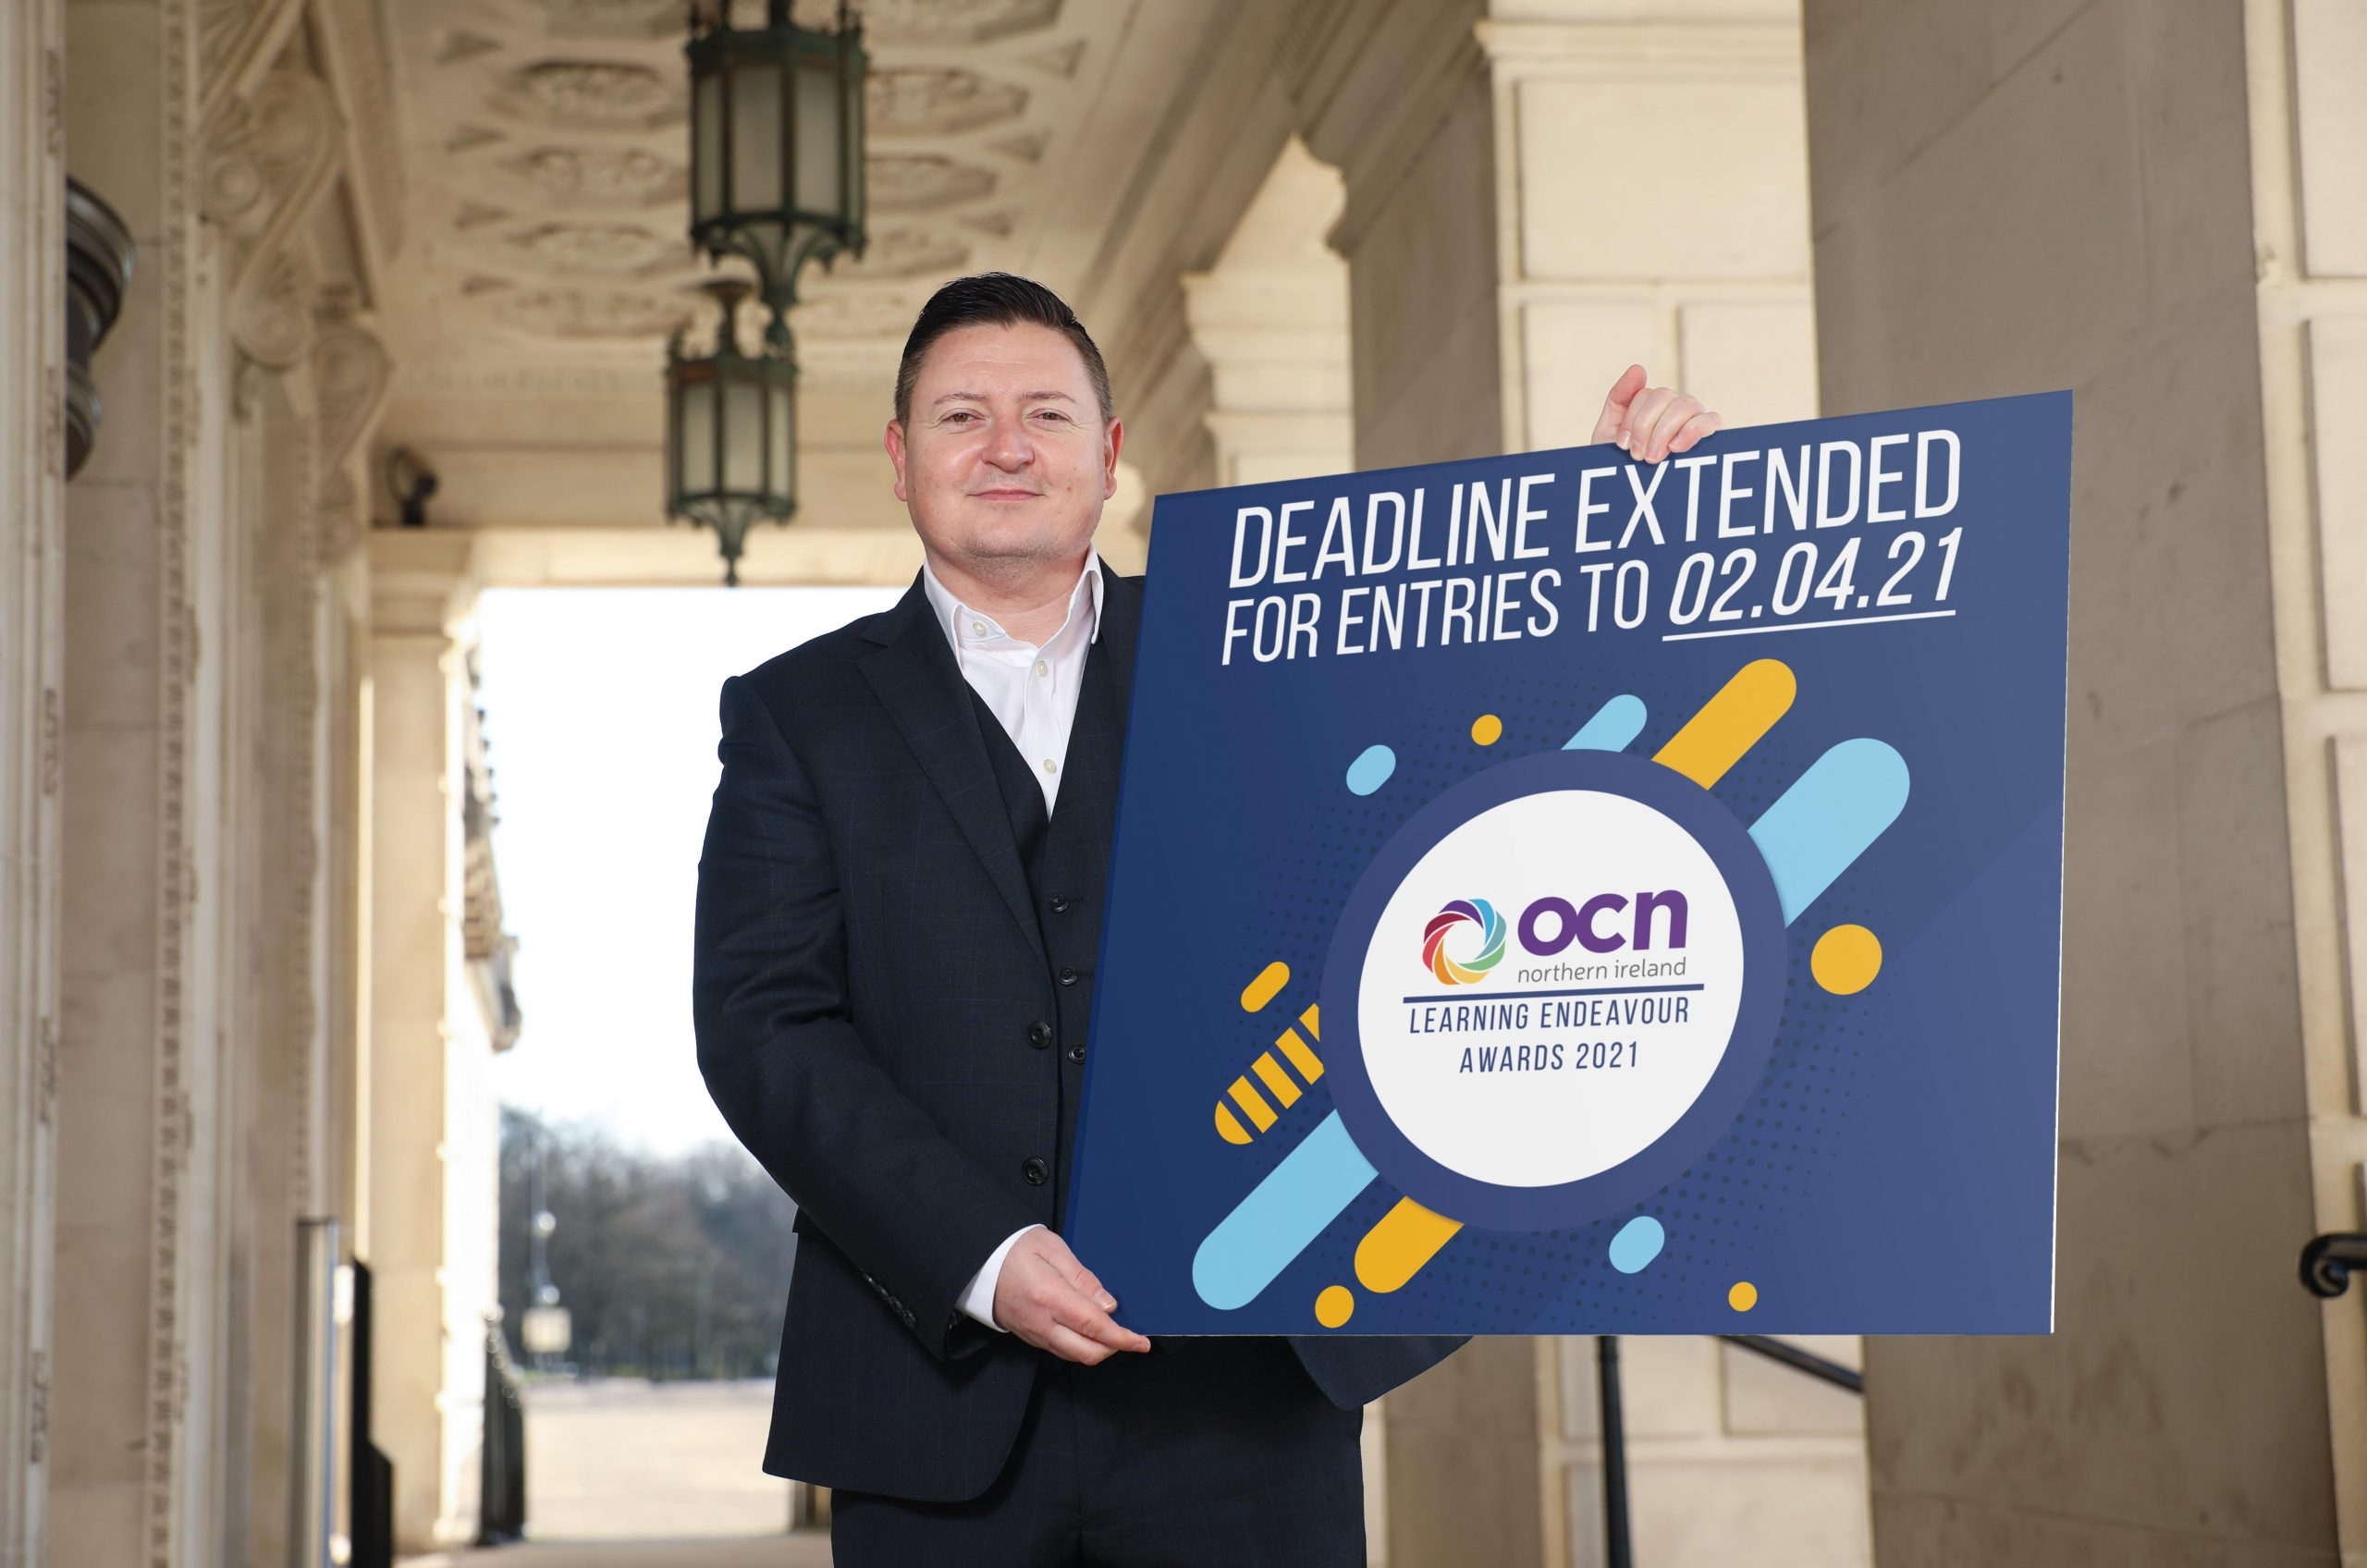 "Martin Flynn, CEO of OCN NI has announced that due to high numbers of entries they are extending the nomination deadline to their annual Learning Endeavour Awards to 12 noon on Friday the 2nd April. He said: ""Thank you to everyone that has submitted a nomination so far – we're delighted to say that it looks like this will be a record-breaking year for entries! The calibre of entries is already extremely high, and we wish all participants the best of luck."" There is still time to nominate someone for one of the prestigious awards, as organisations now have until 12 noon on Friday the 2nd April, before the application process closes. The awards provide a great opportunity for organisations to promote themselves, celebrate the achievements of learners and end the academic year on a really positive note. For more information visit https://www.ocnni.org.uk/learner-awards-2021/"